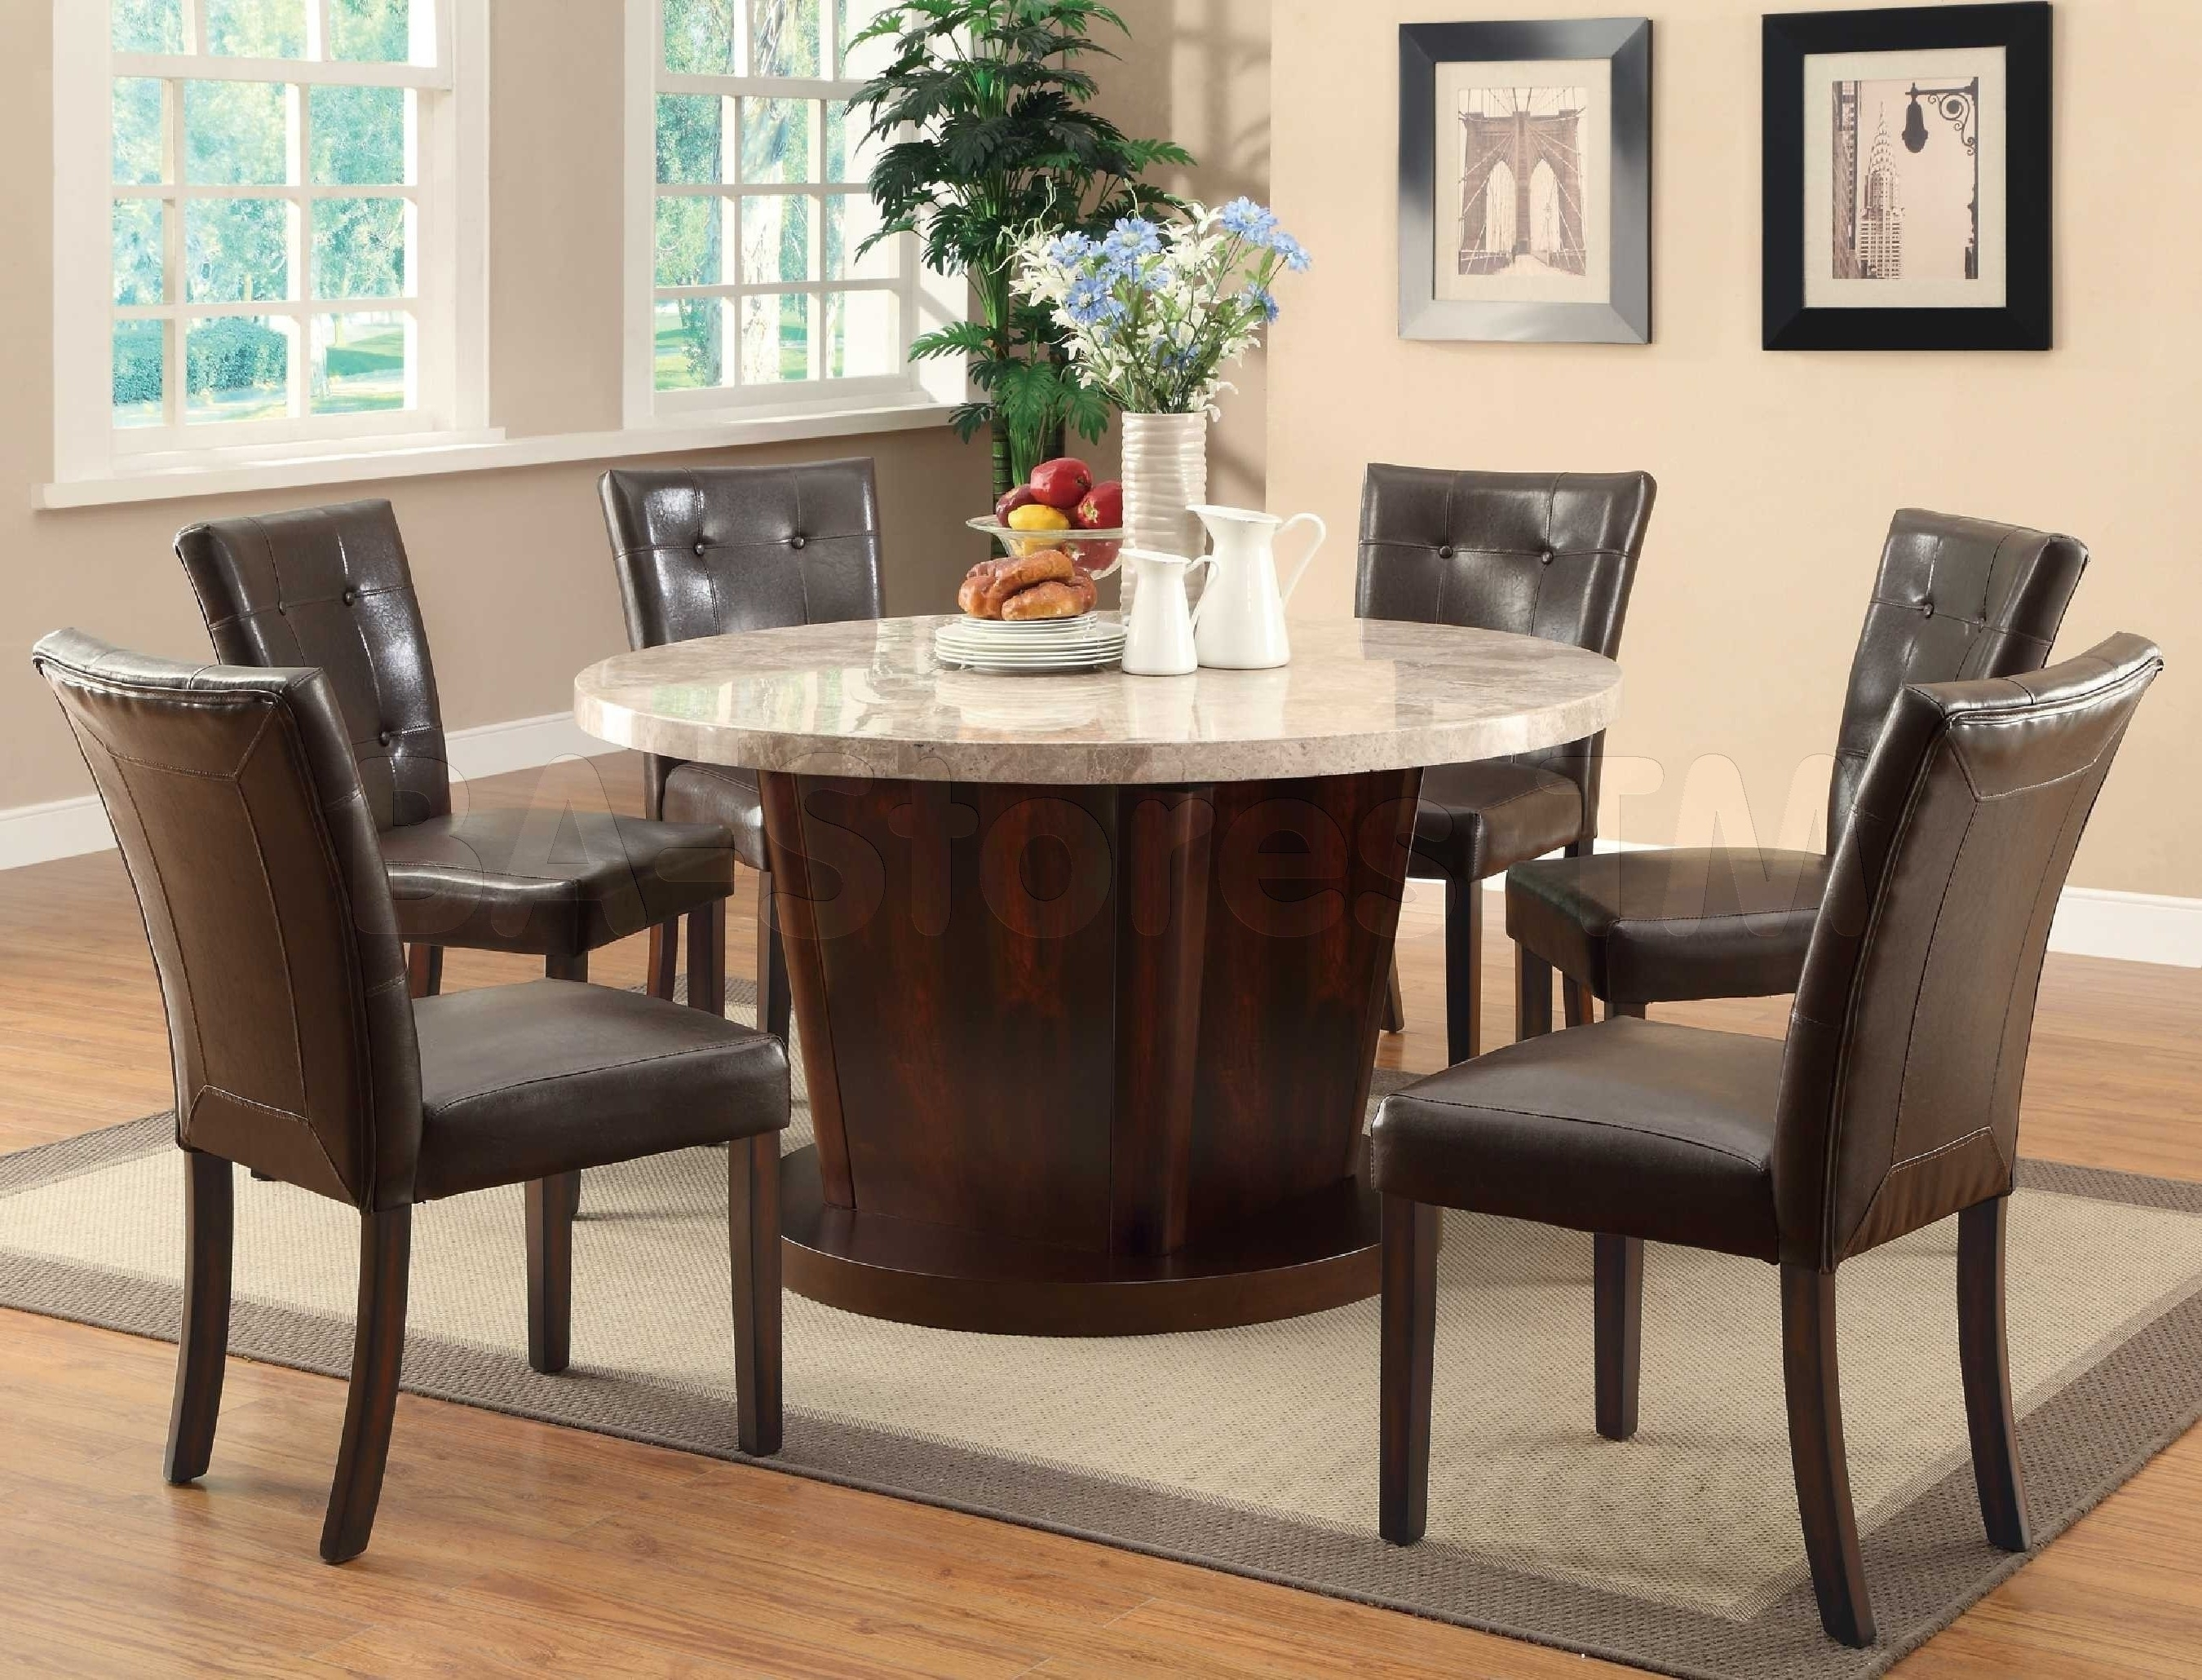 Most Recently Released 26 Elegant Dining Table With Leather Seats – Welovedandelion Intended For Dark Wooden Dining Tables (View 24 of 25)